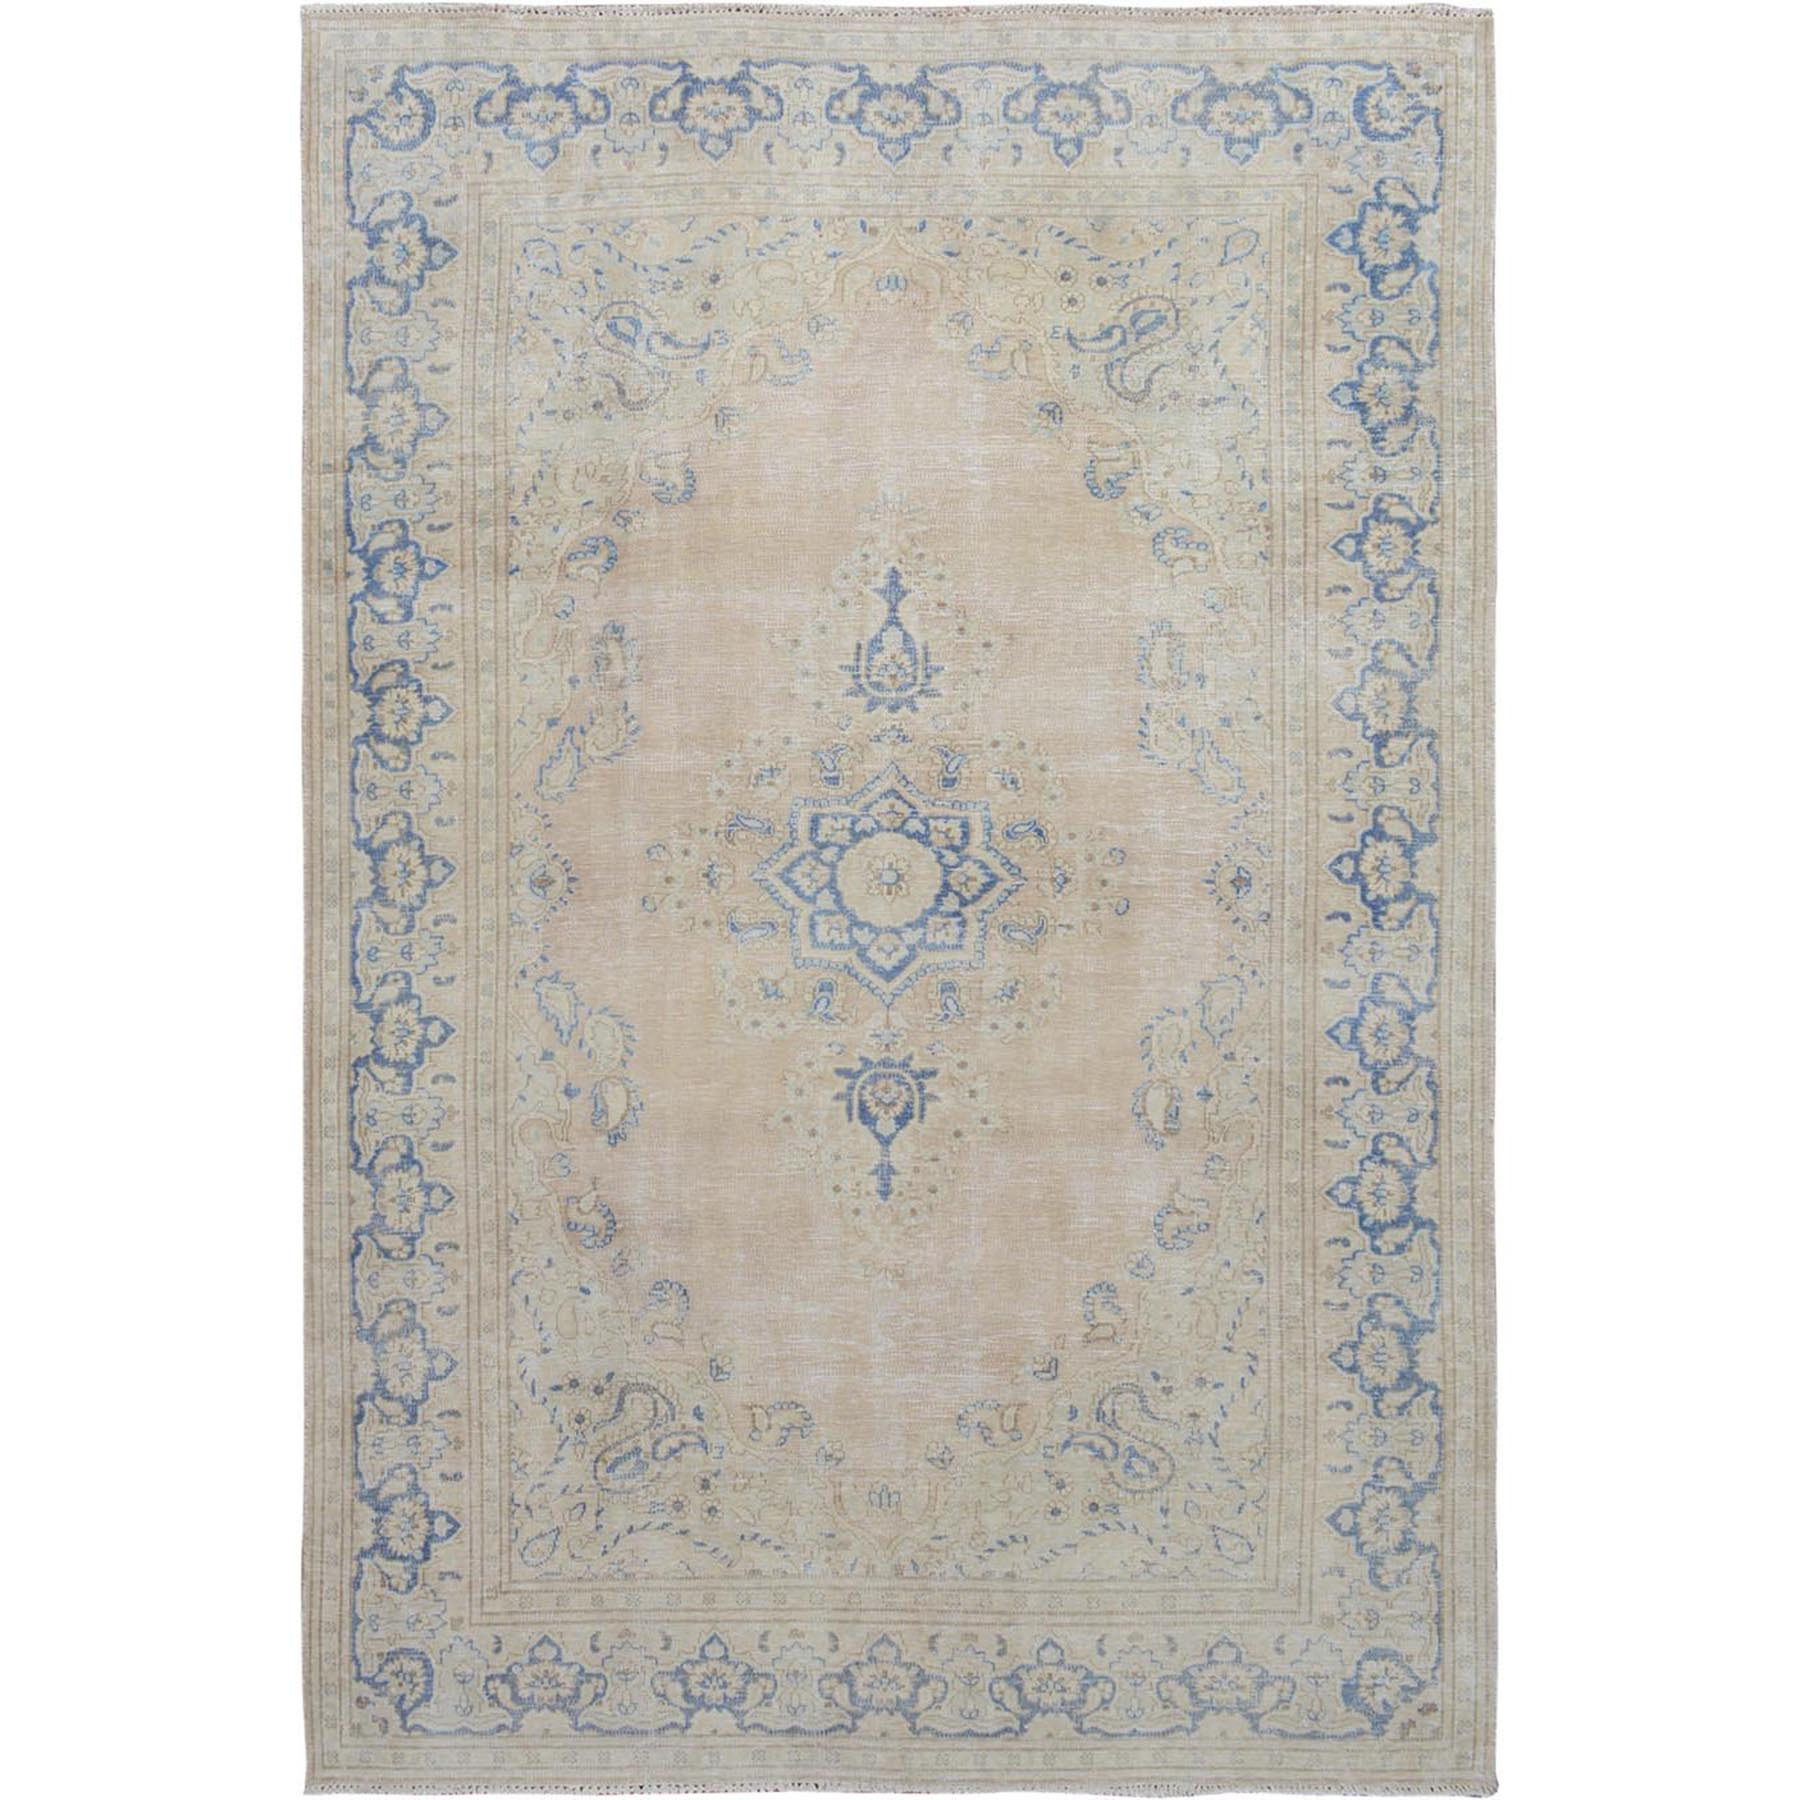 "5'7""x8'8"" Beige Washed Out and Worn Down Vintage Persian Kerman Pure Wool Hand Woven Oriental Rug"